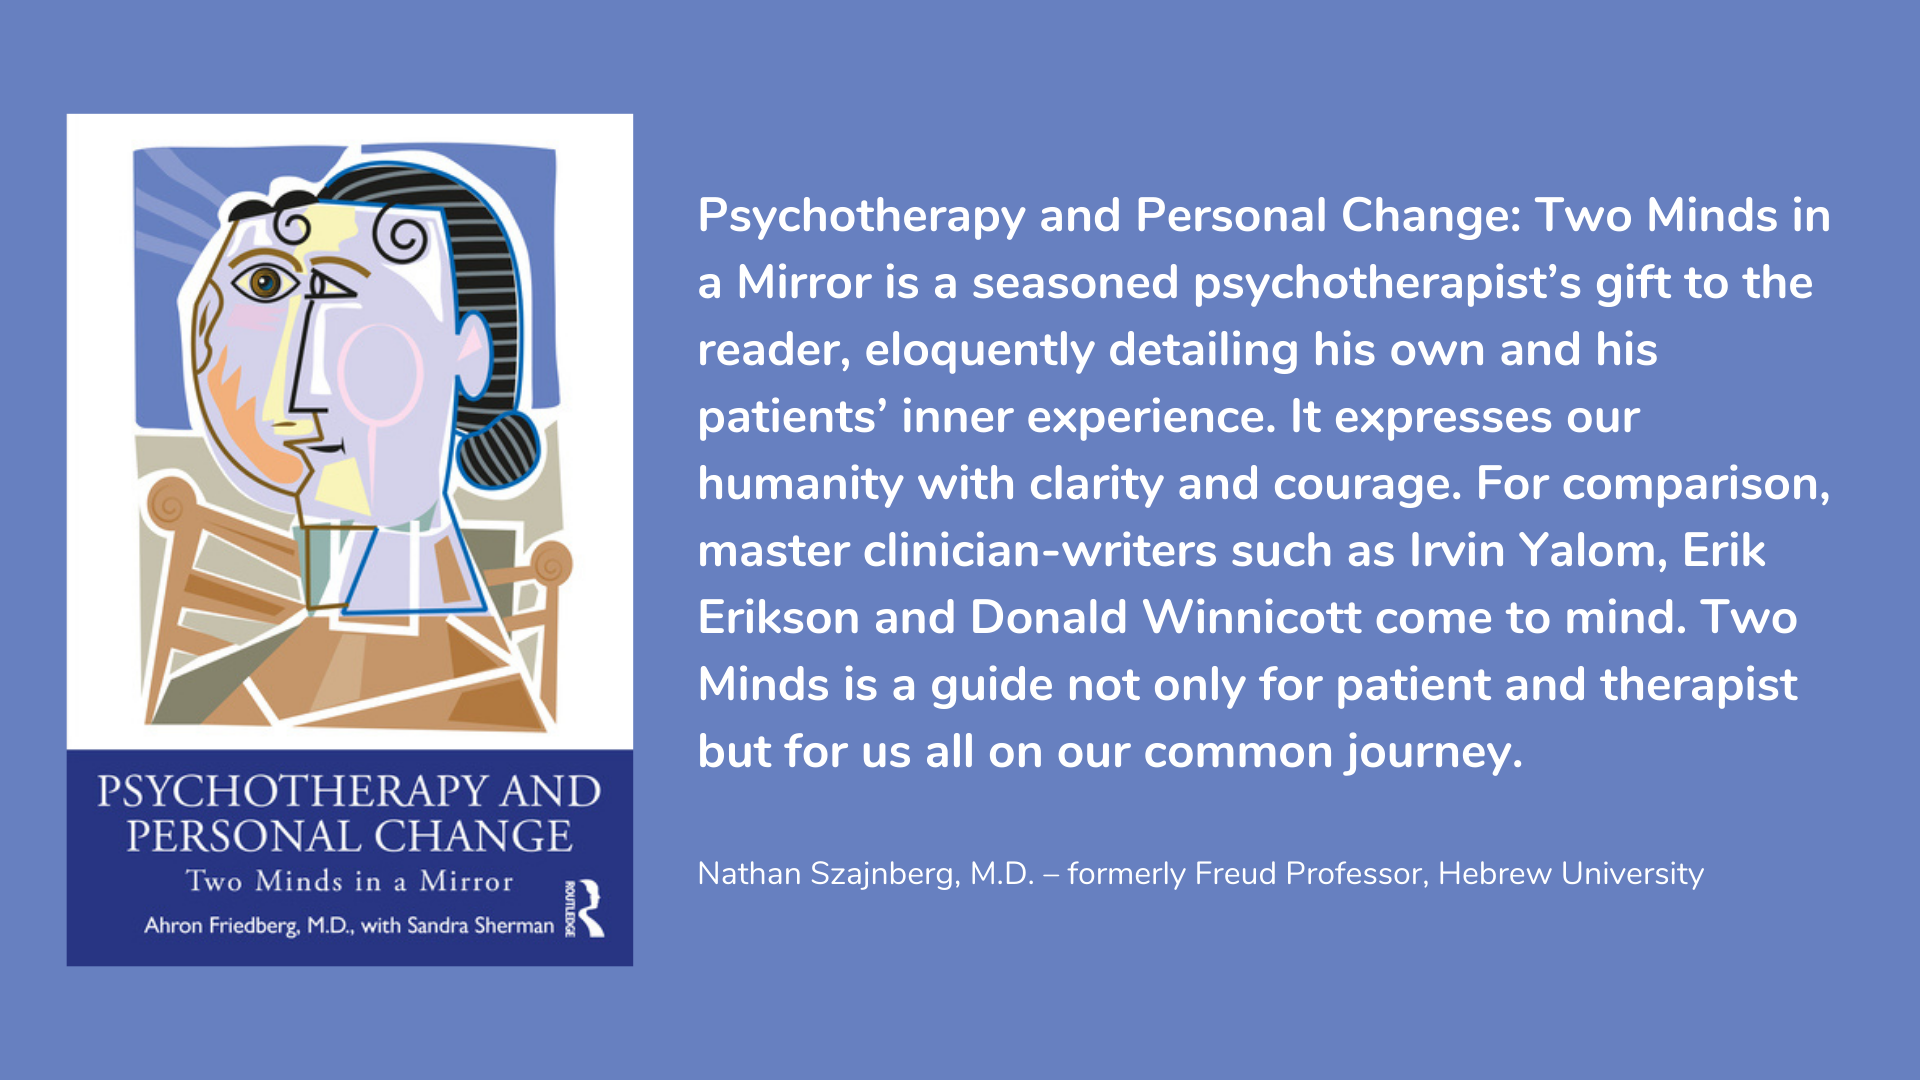 Psychotherapy and Personal Change: Two Minds in a Mirror by Ahron Friedberg, M.D.